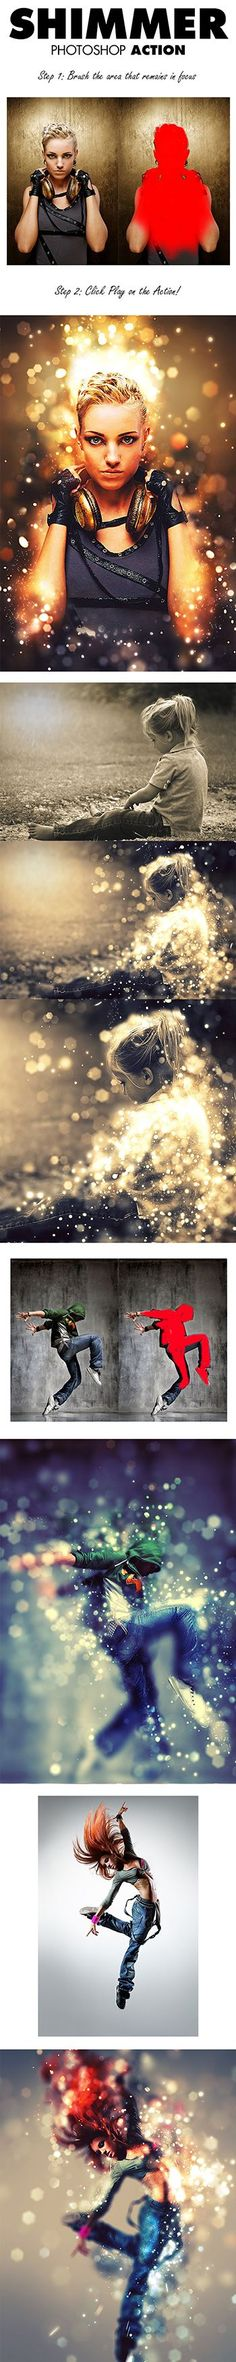 4-Shimmer Photoshop Action-